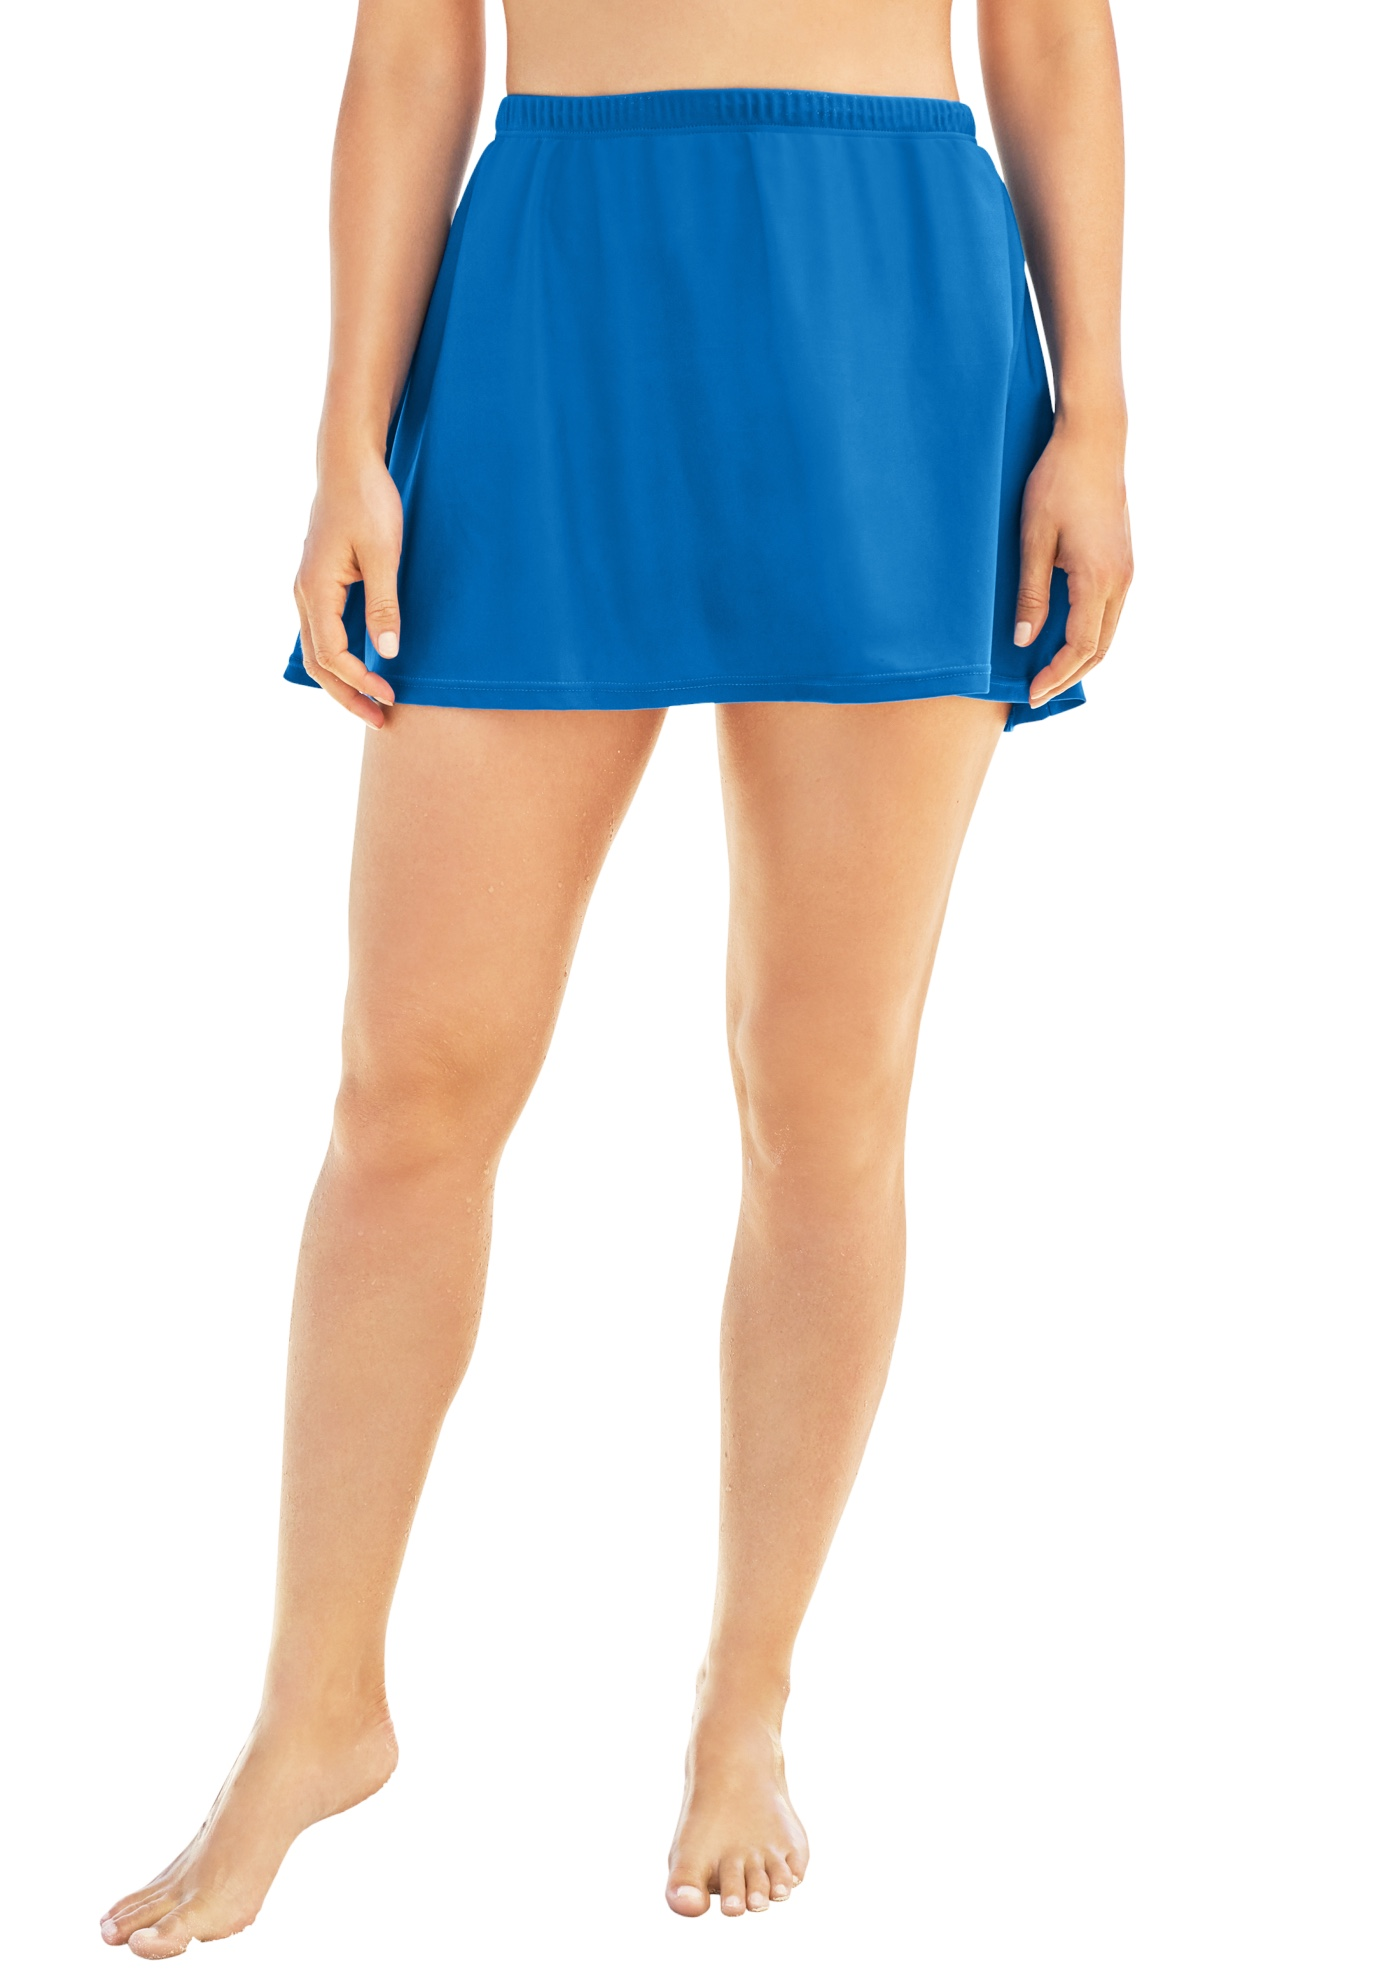 Plus Size Women's A-Line Swim Skirt with Built-In Brief by Swim 365 in Dream Blue